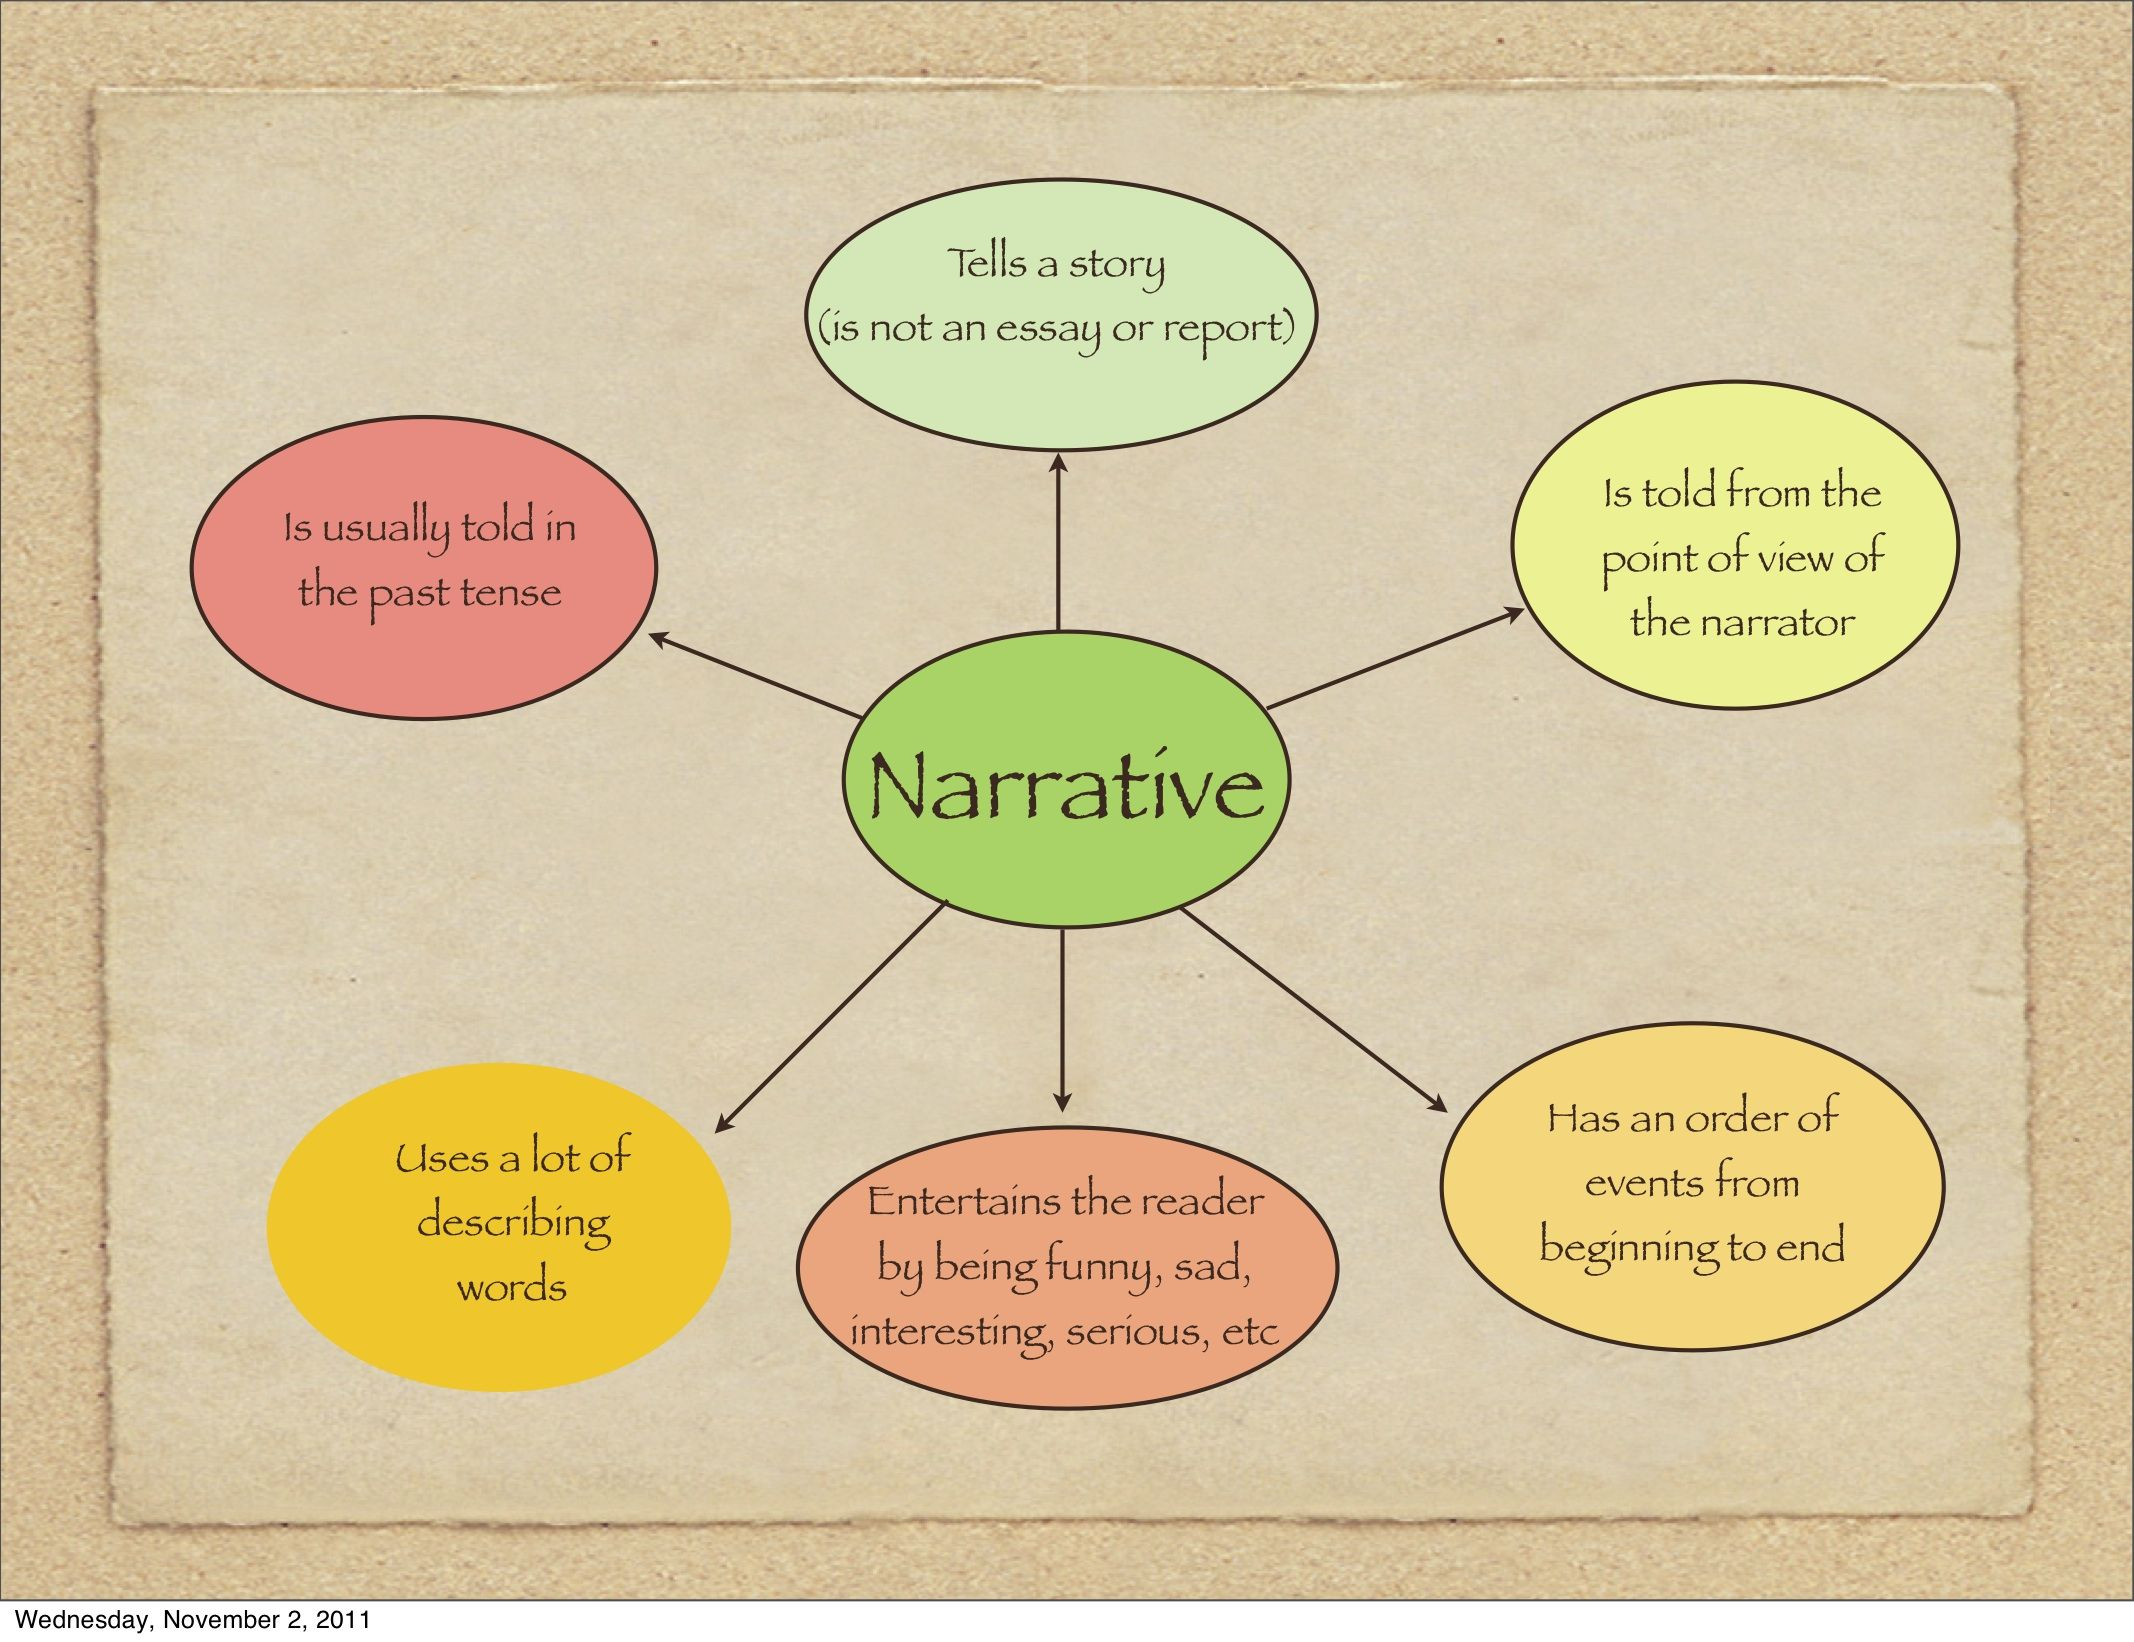 17 best images about narrative story elements 17 best images about narrative story elements anchor charts graphic organizers and patricia polacco